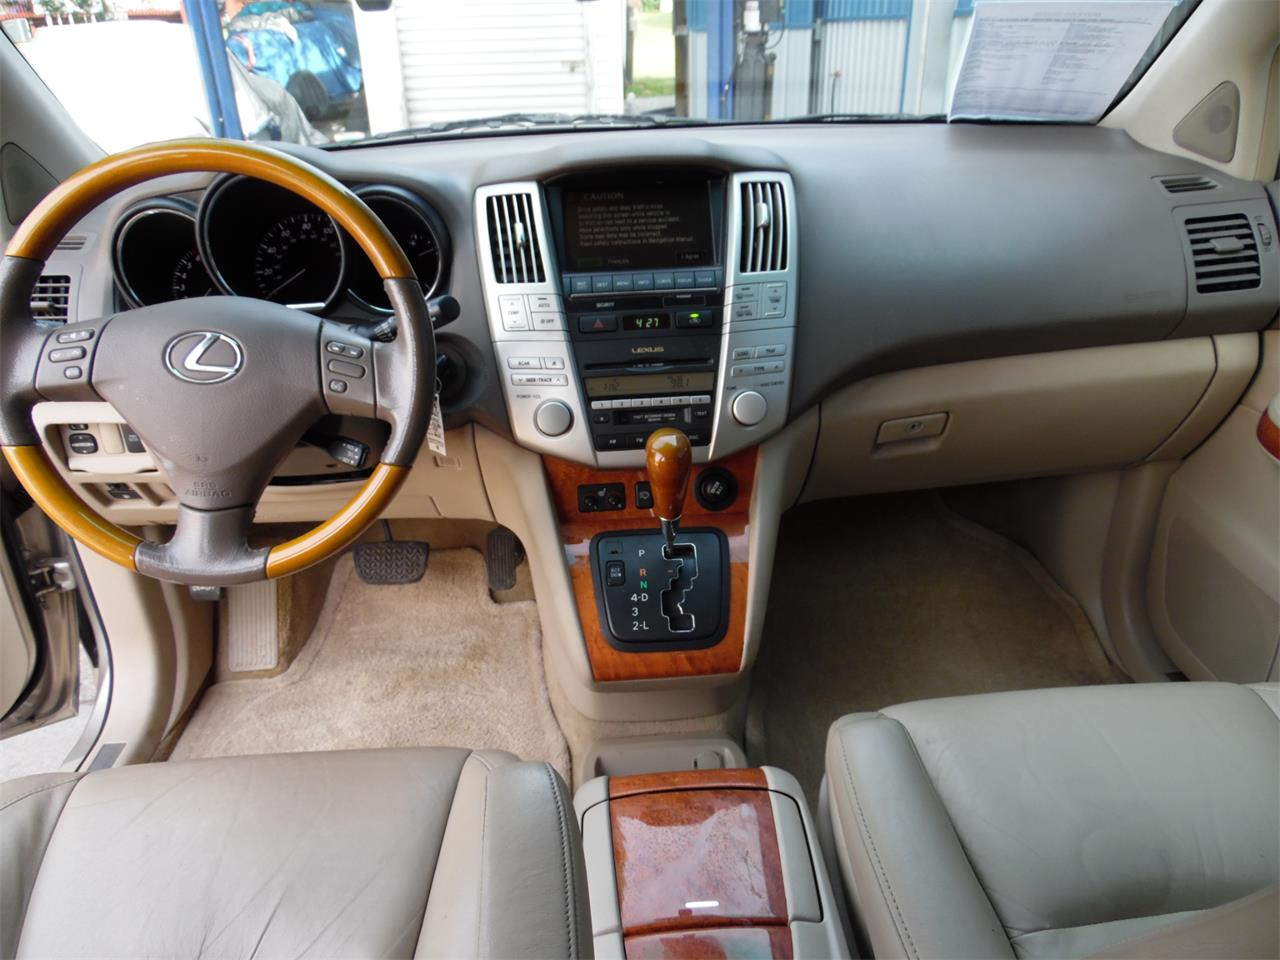 Large Picture of 2005 Lexus RX330 located in Kentucky - $9,990.00 - QC3R